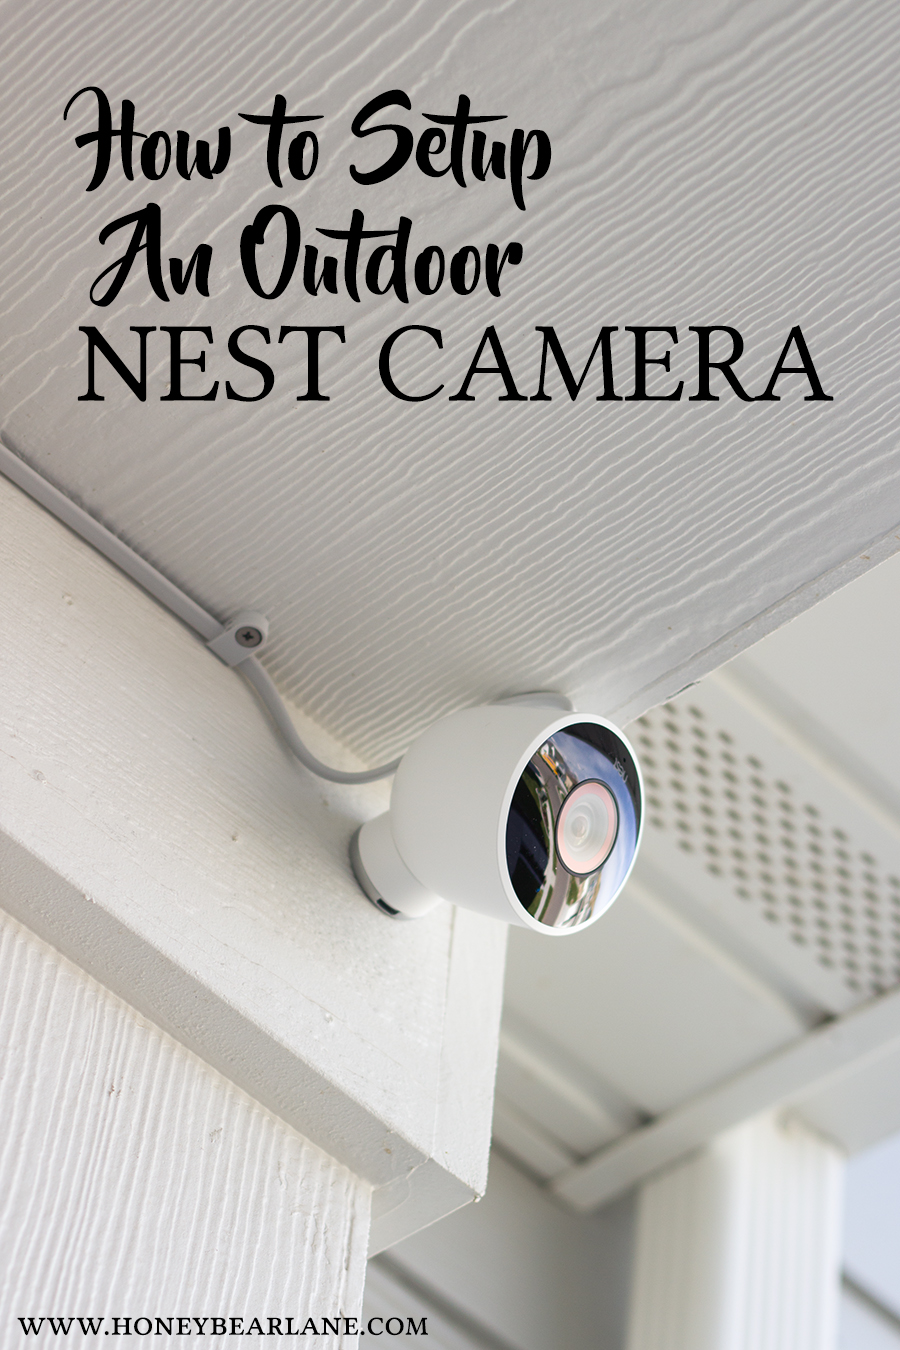 smart home series how to setup an outdoor nest camera. Black Bedroom Furniture Sets. Home Design Ideas